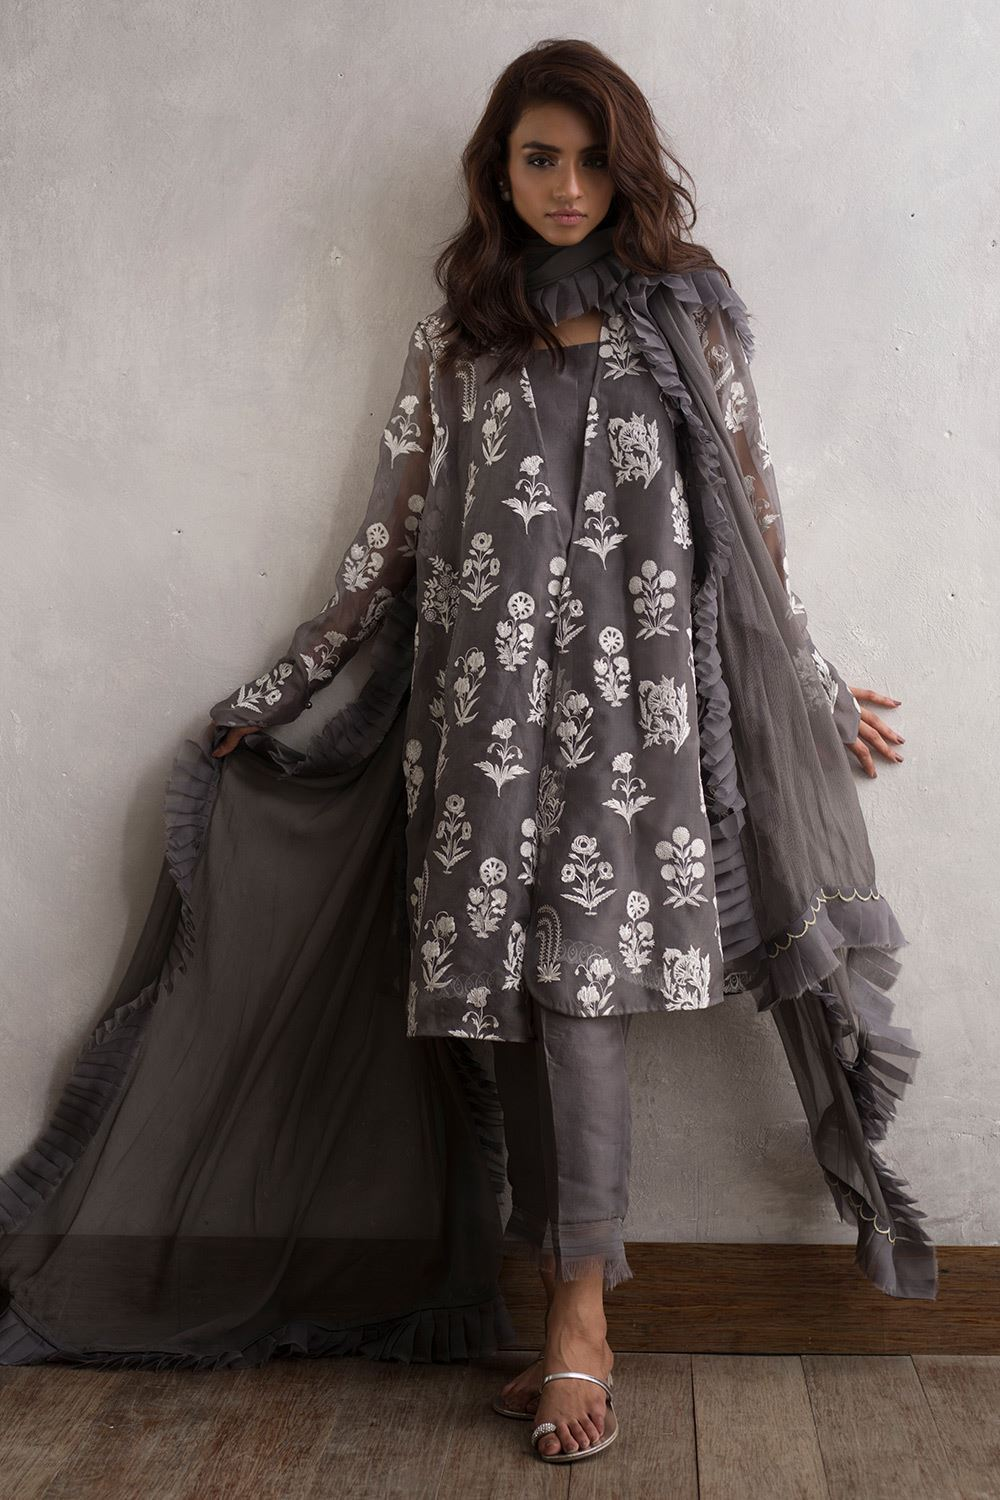 Fashion style Eid collection dresses designed by nida azwer for woman